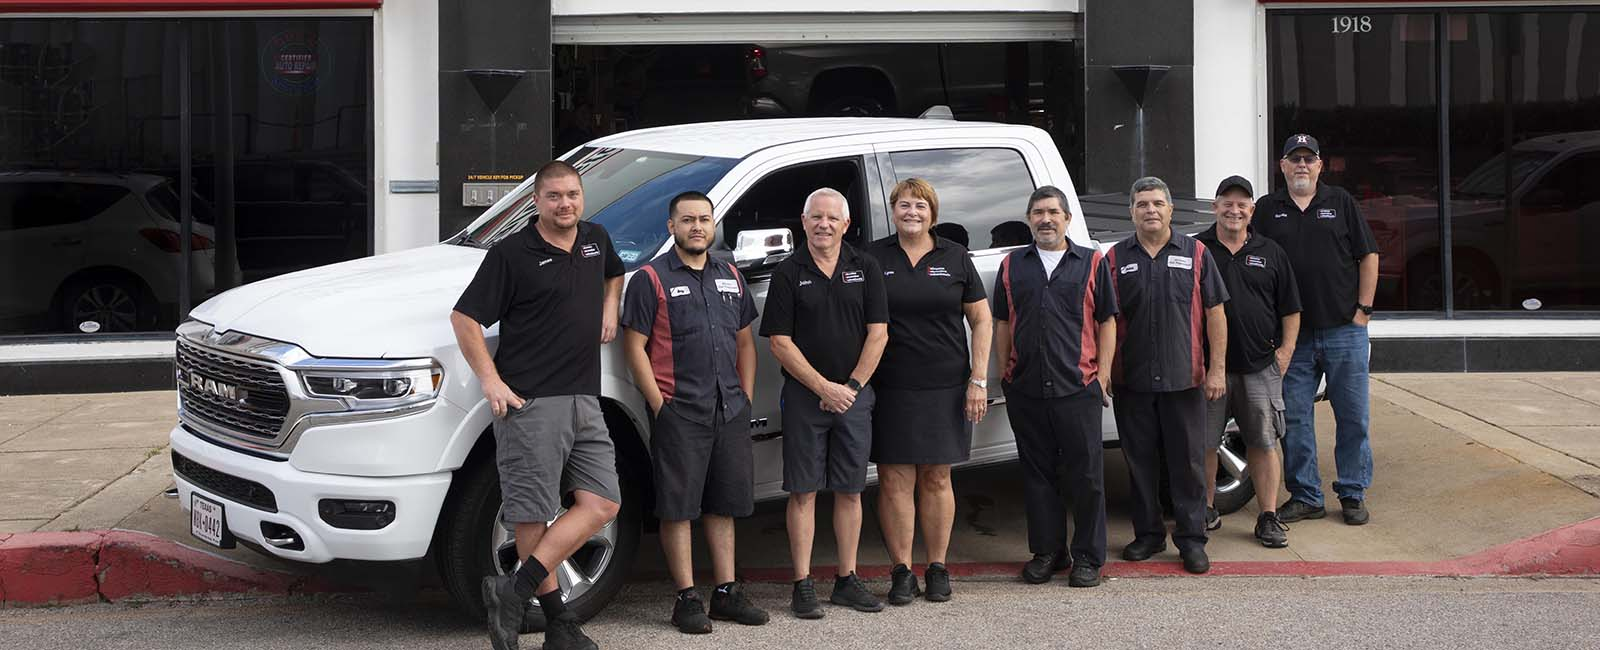 Galveston Automotive Professionals team leaning on packard